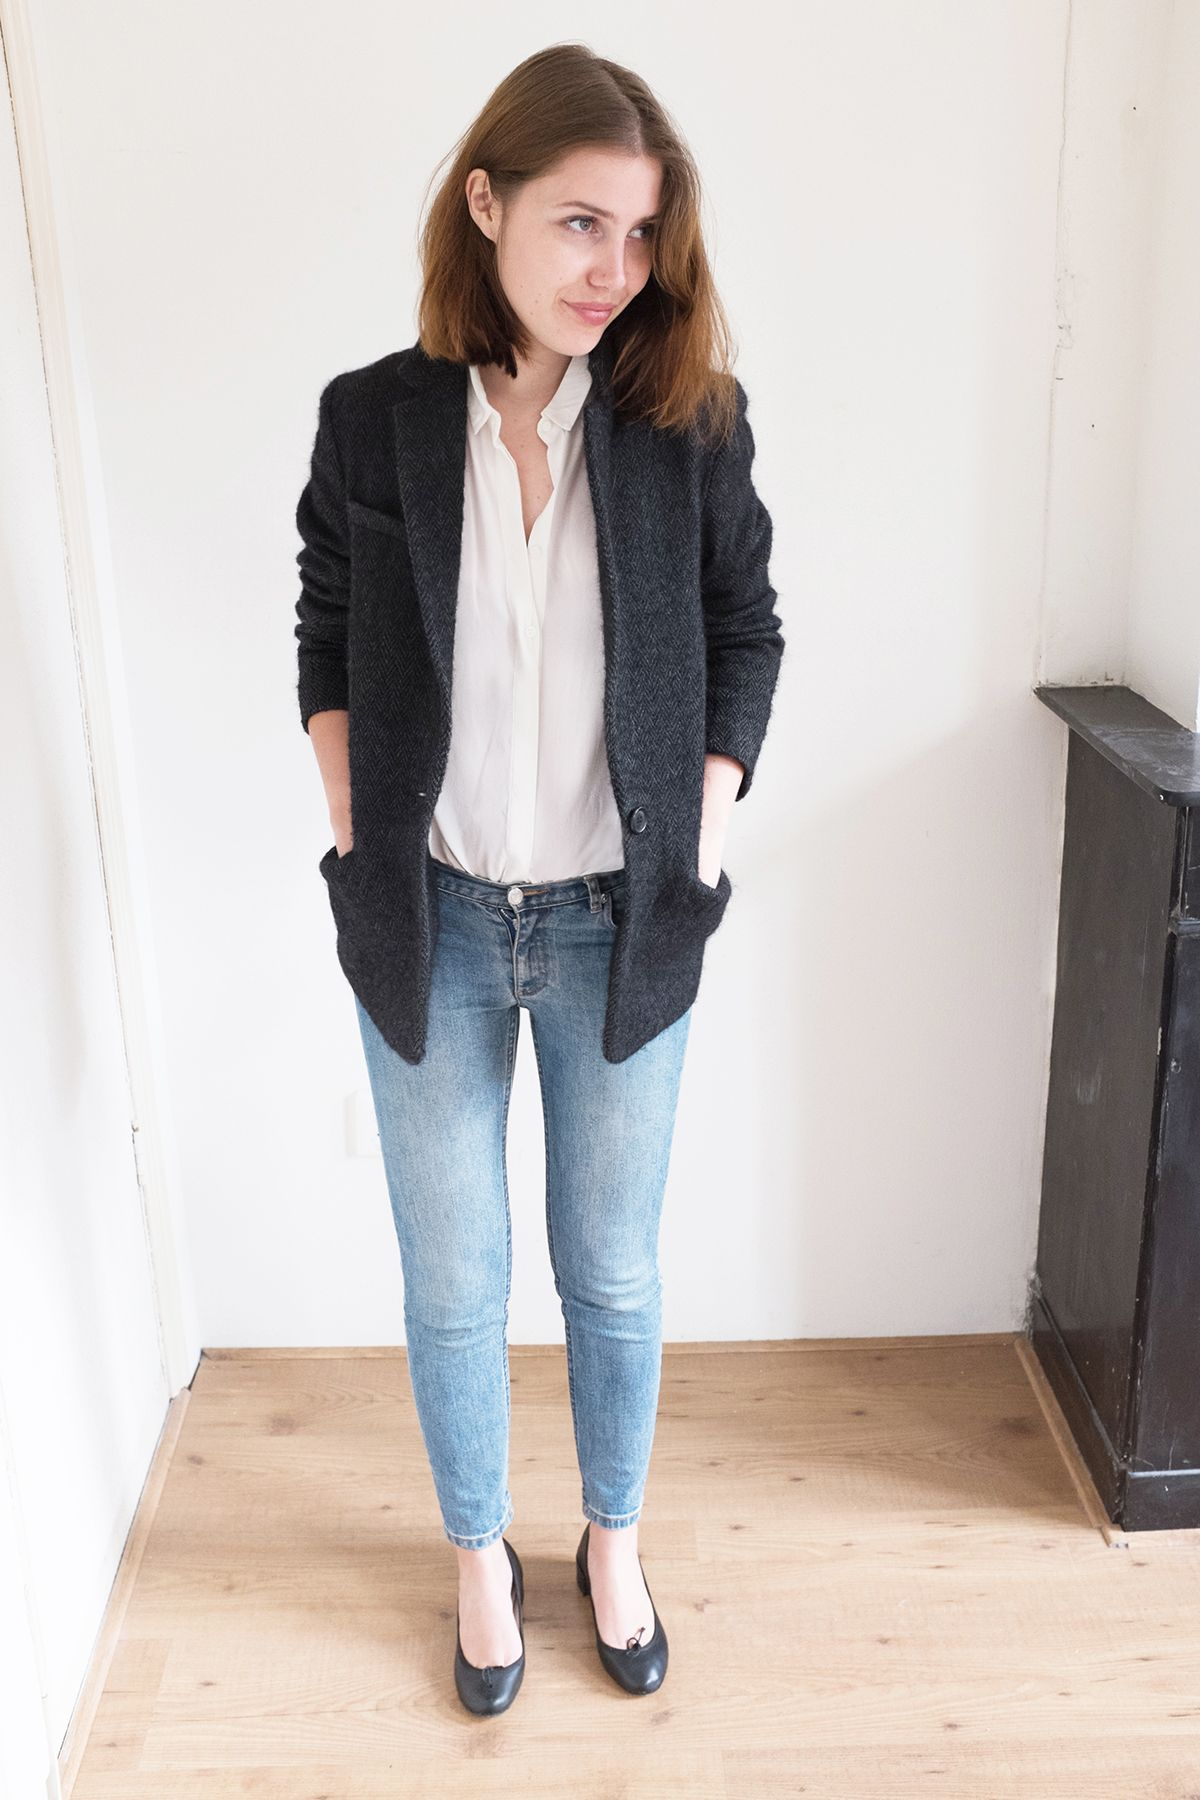 321a8524dae86 Everlane Silk Shirt Outfit with Isabel Marant Jacket on www.sartreuse.com